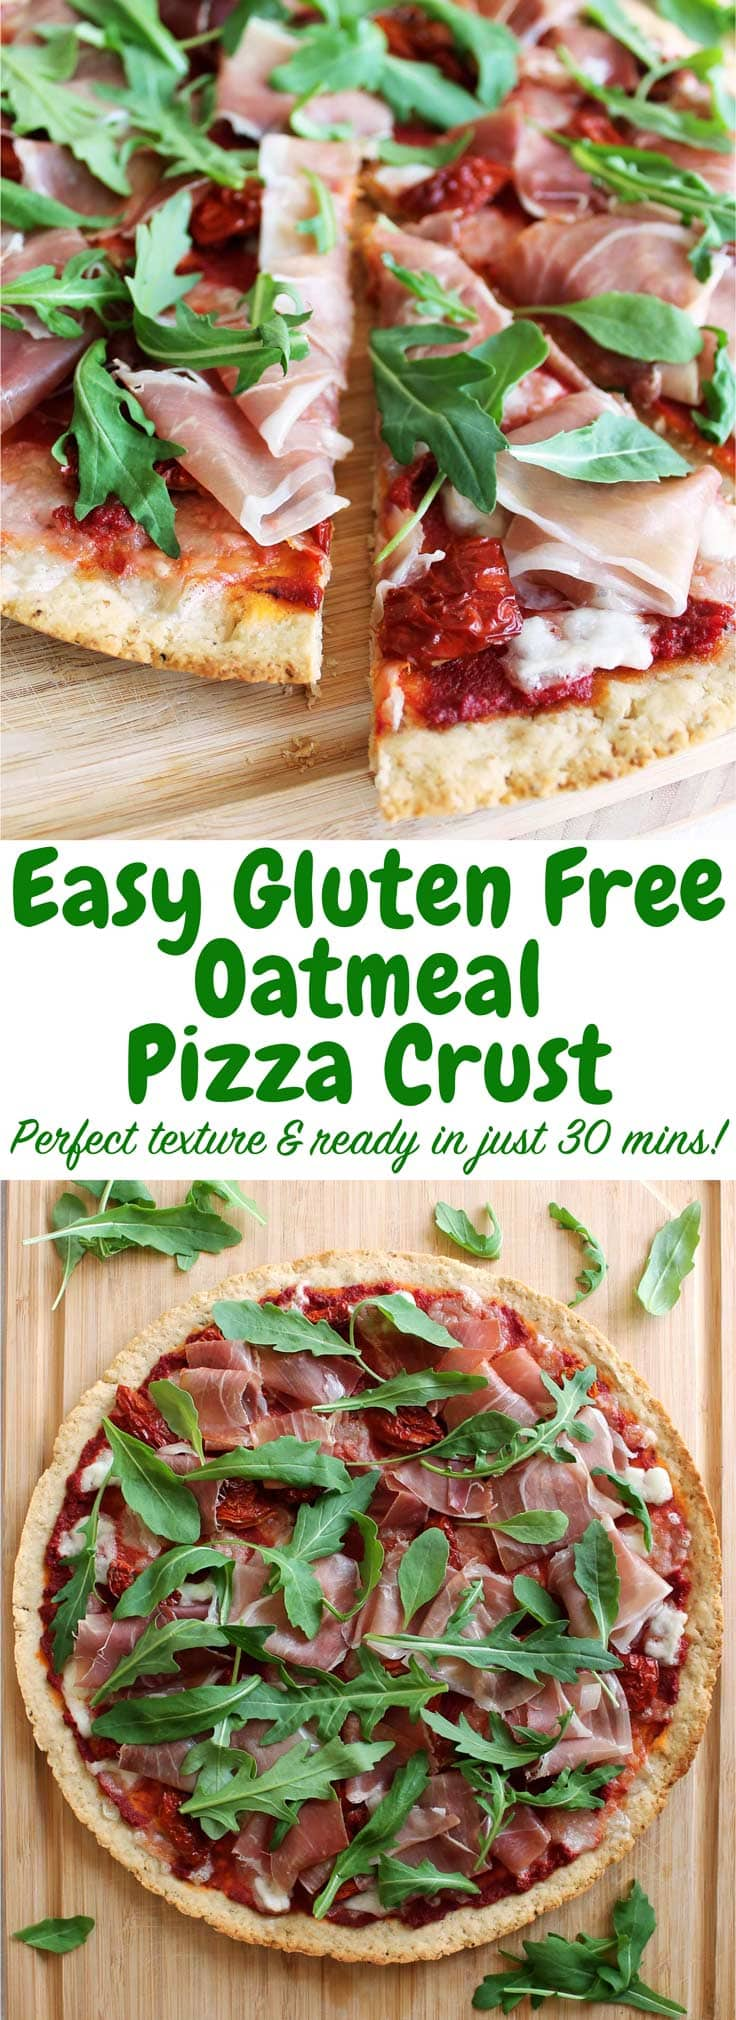 Finally, a delicious gluten free pizza crust! This oatmeal pizza crust is so simple to make and has only 6 ingredients! It is also dairy free!